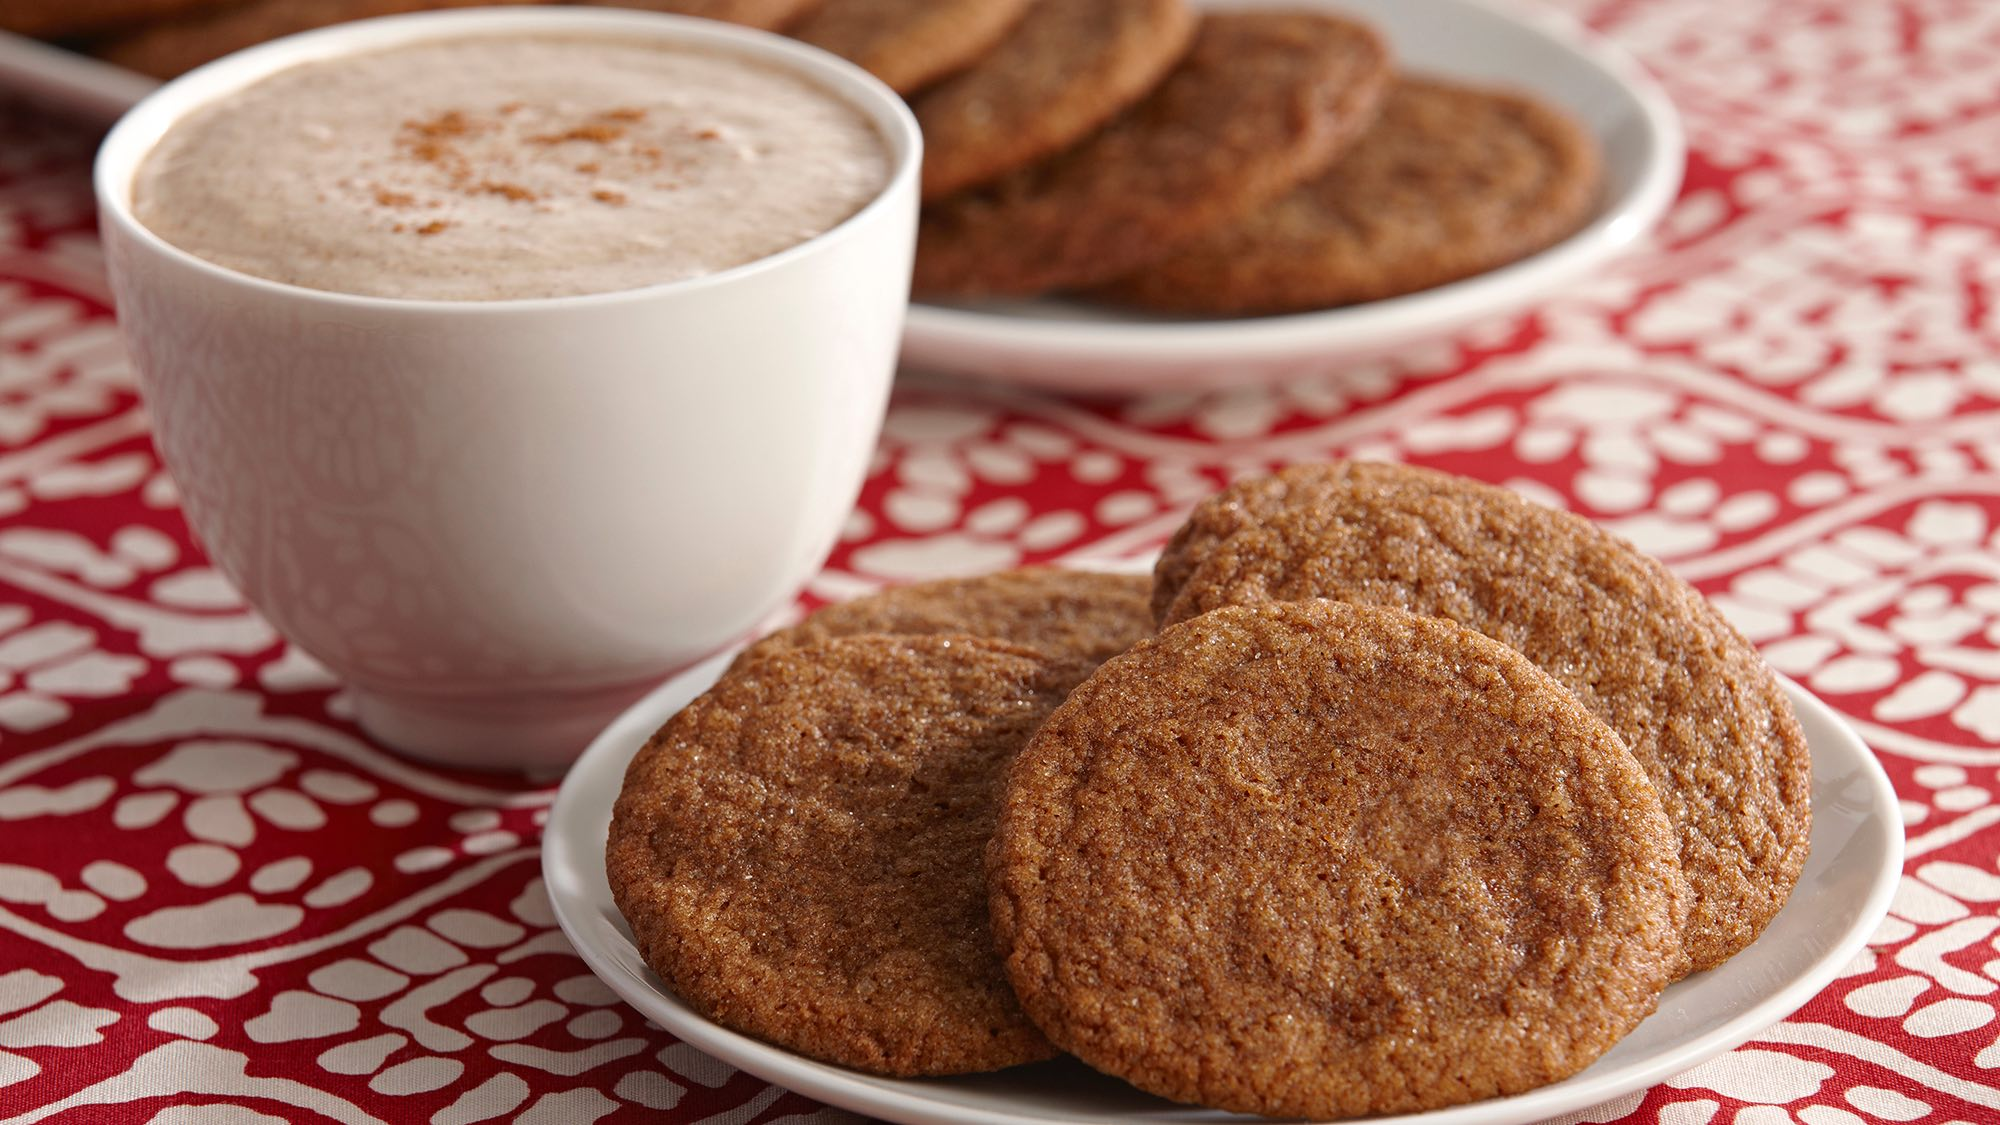 McCormick Molasses Spice Cookies